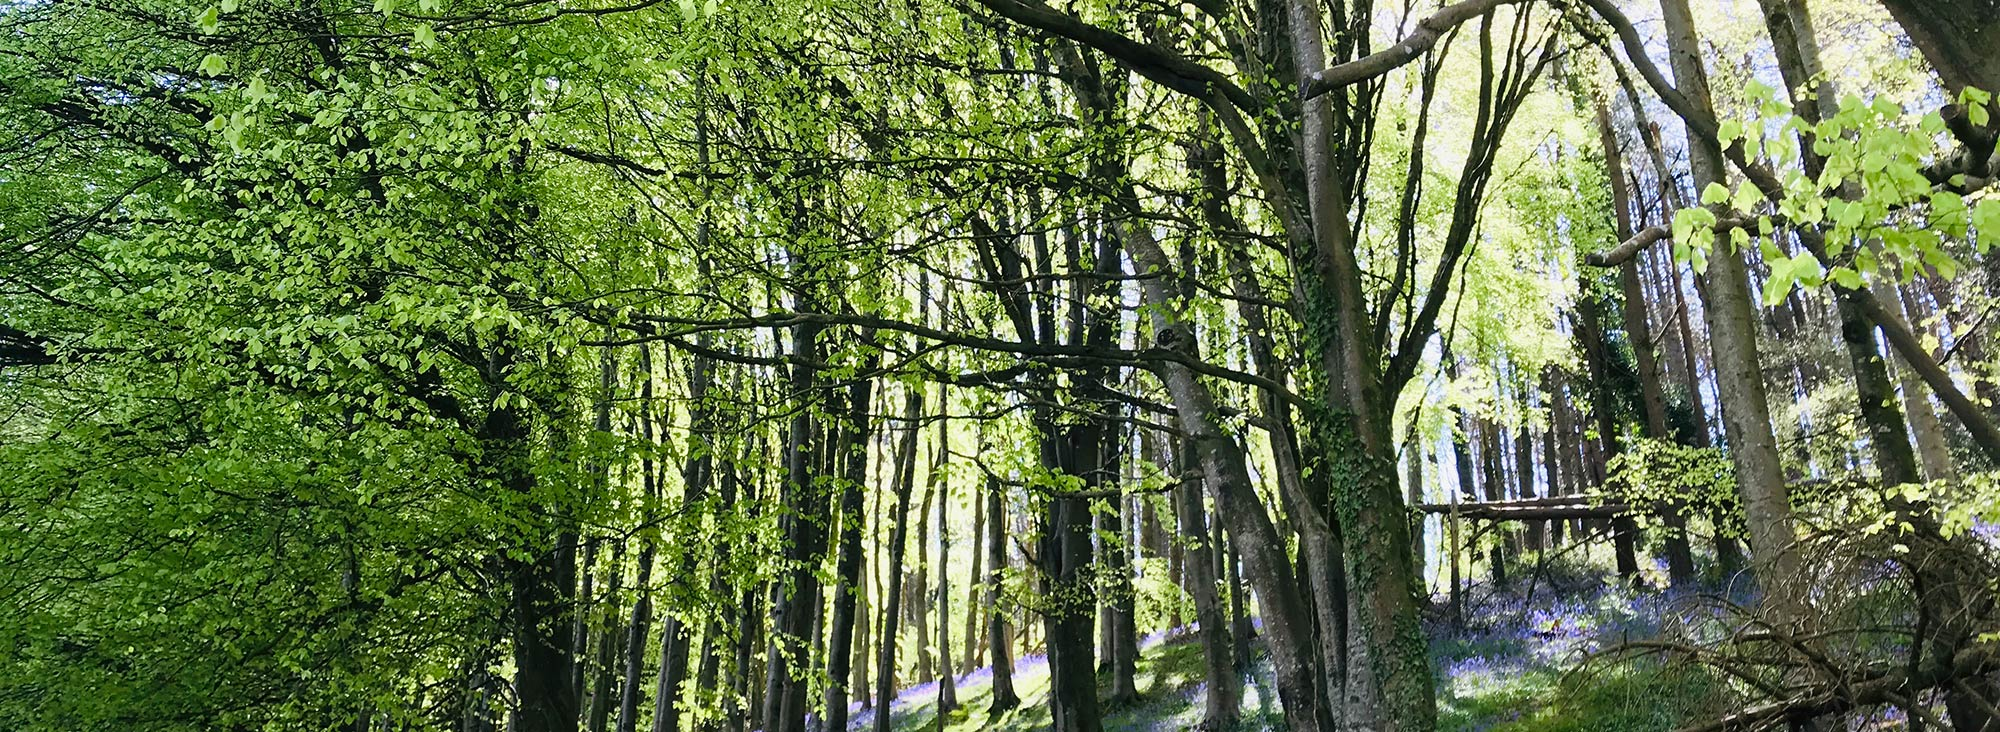 Langdon forest trees and bluebells